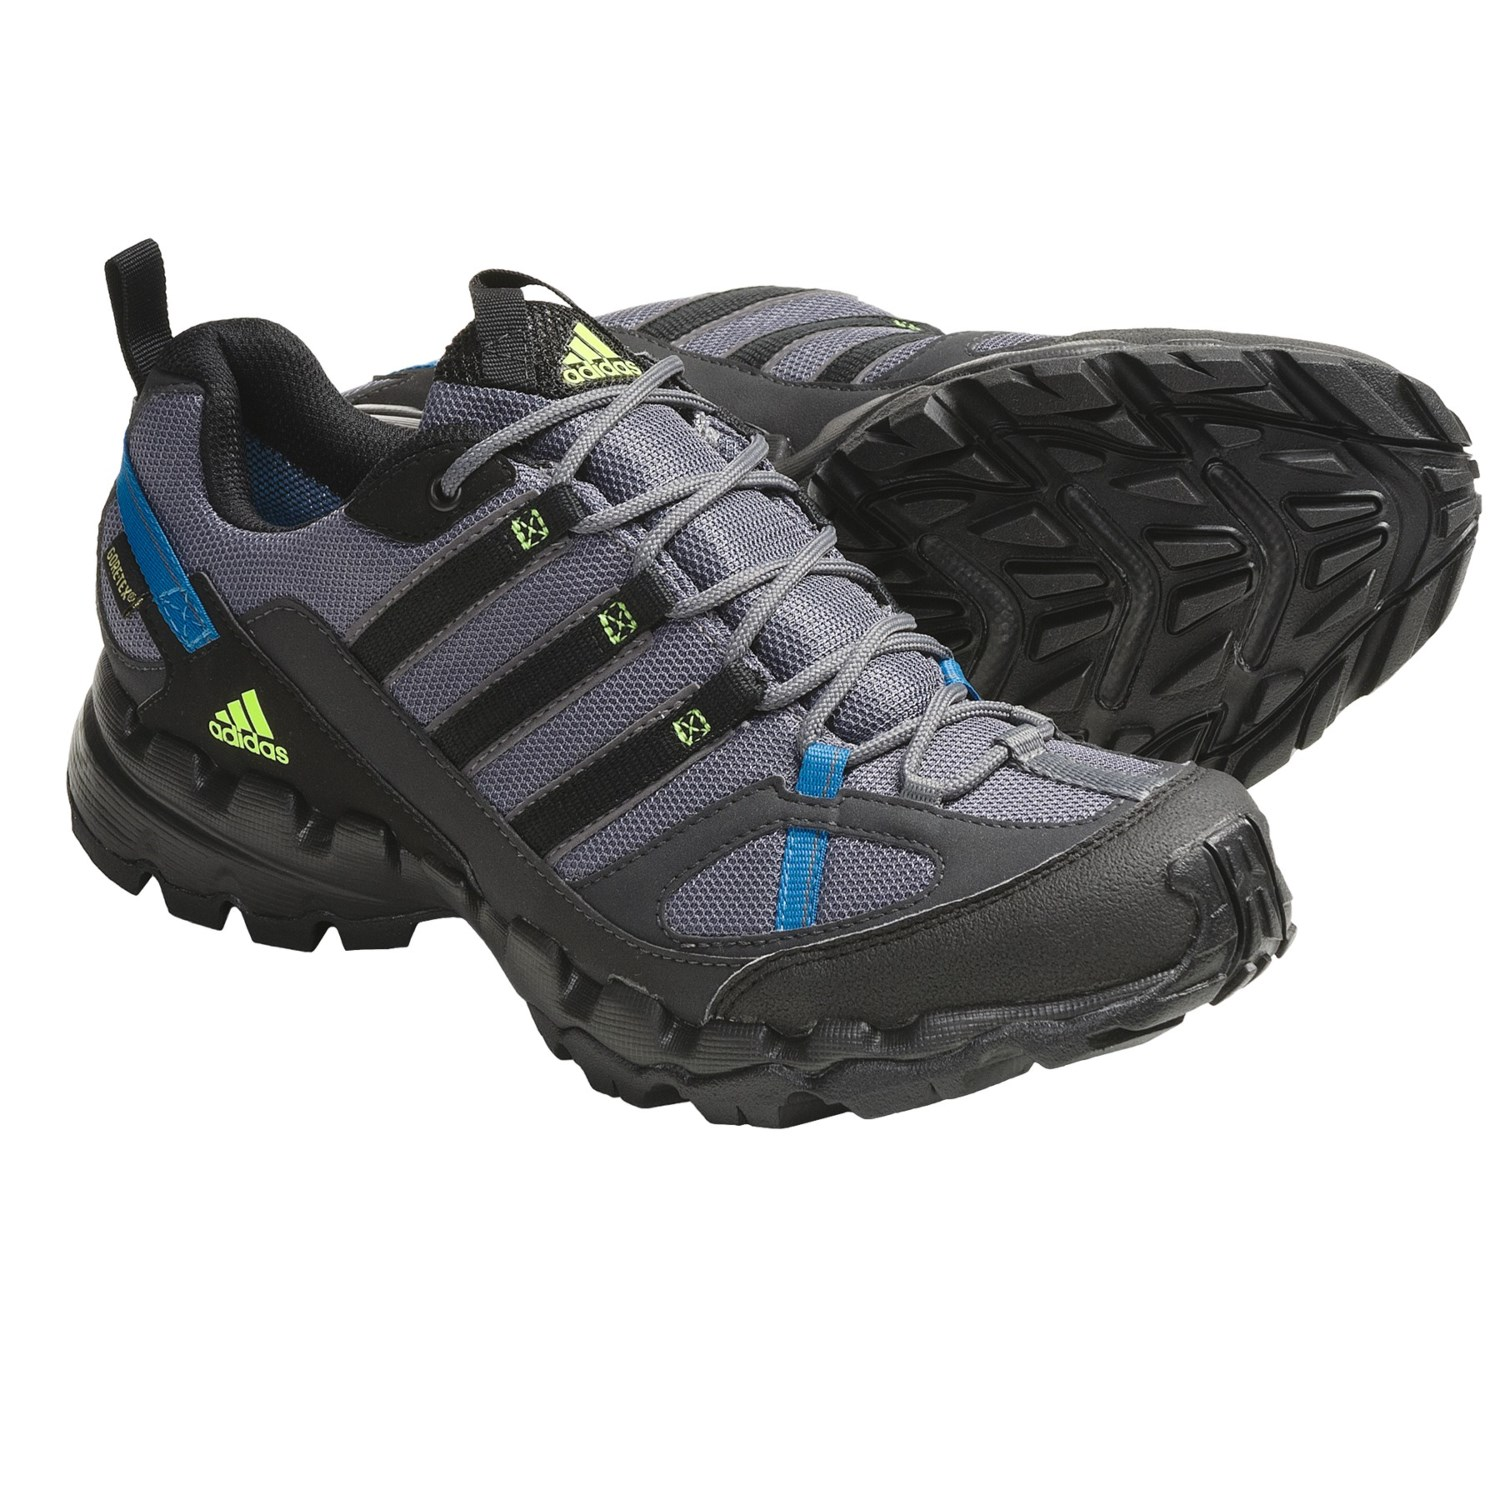 Lifestyle Shoes Vs Running Shoes